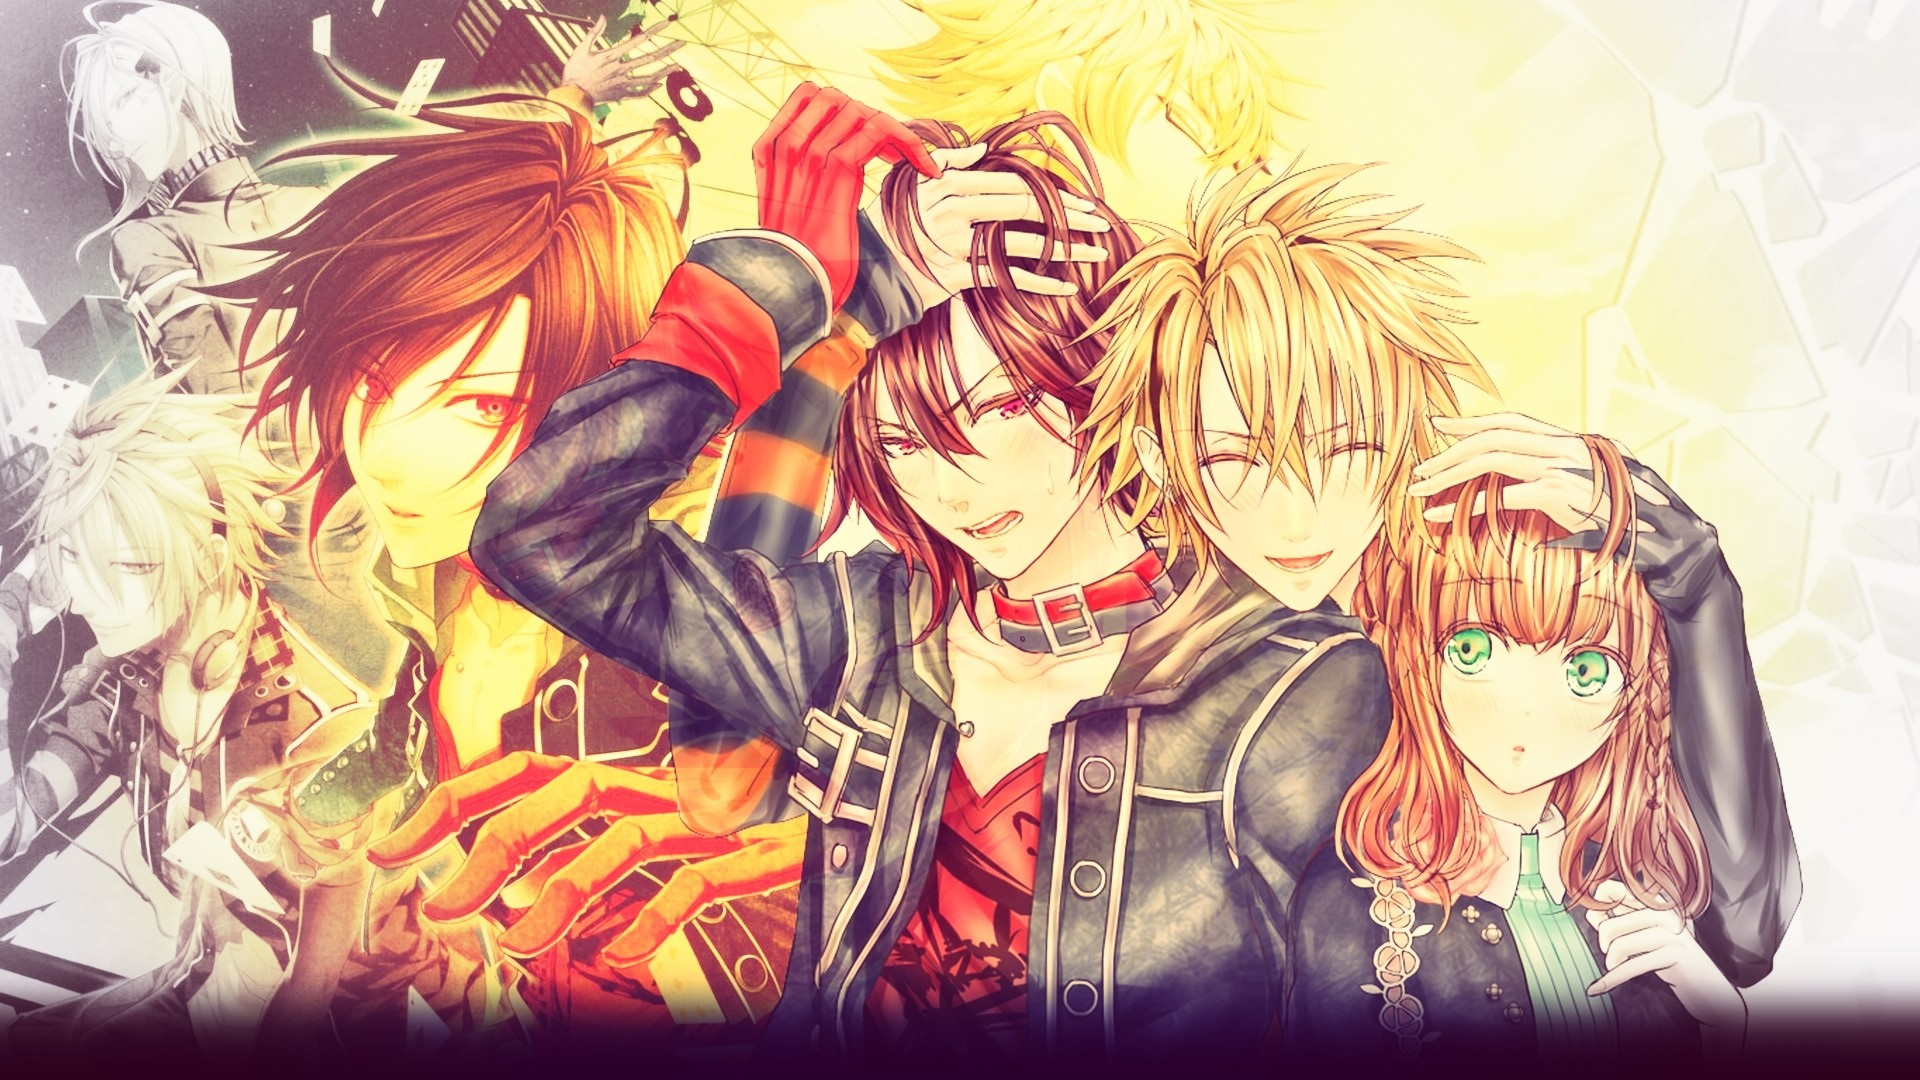 66 Amnesia Anime Wallpapers on WallpaperPlay 1920x1080